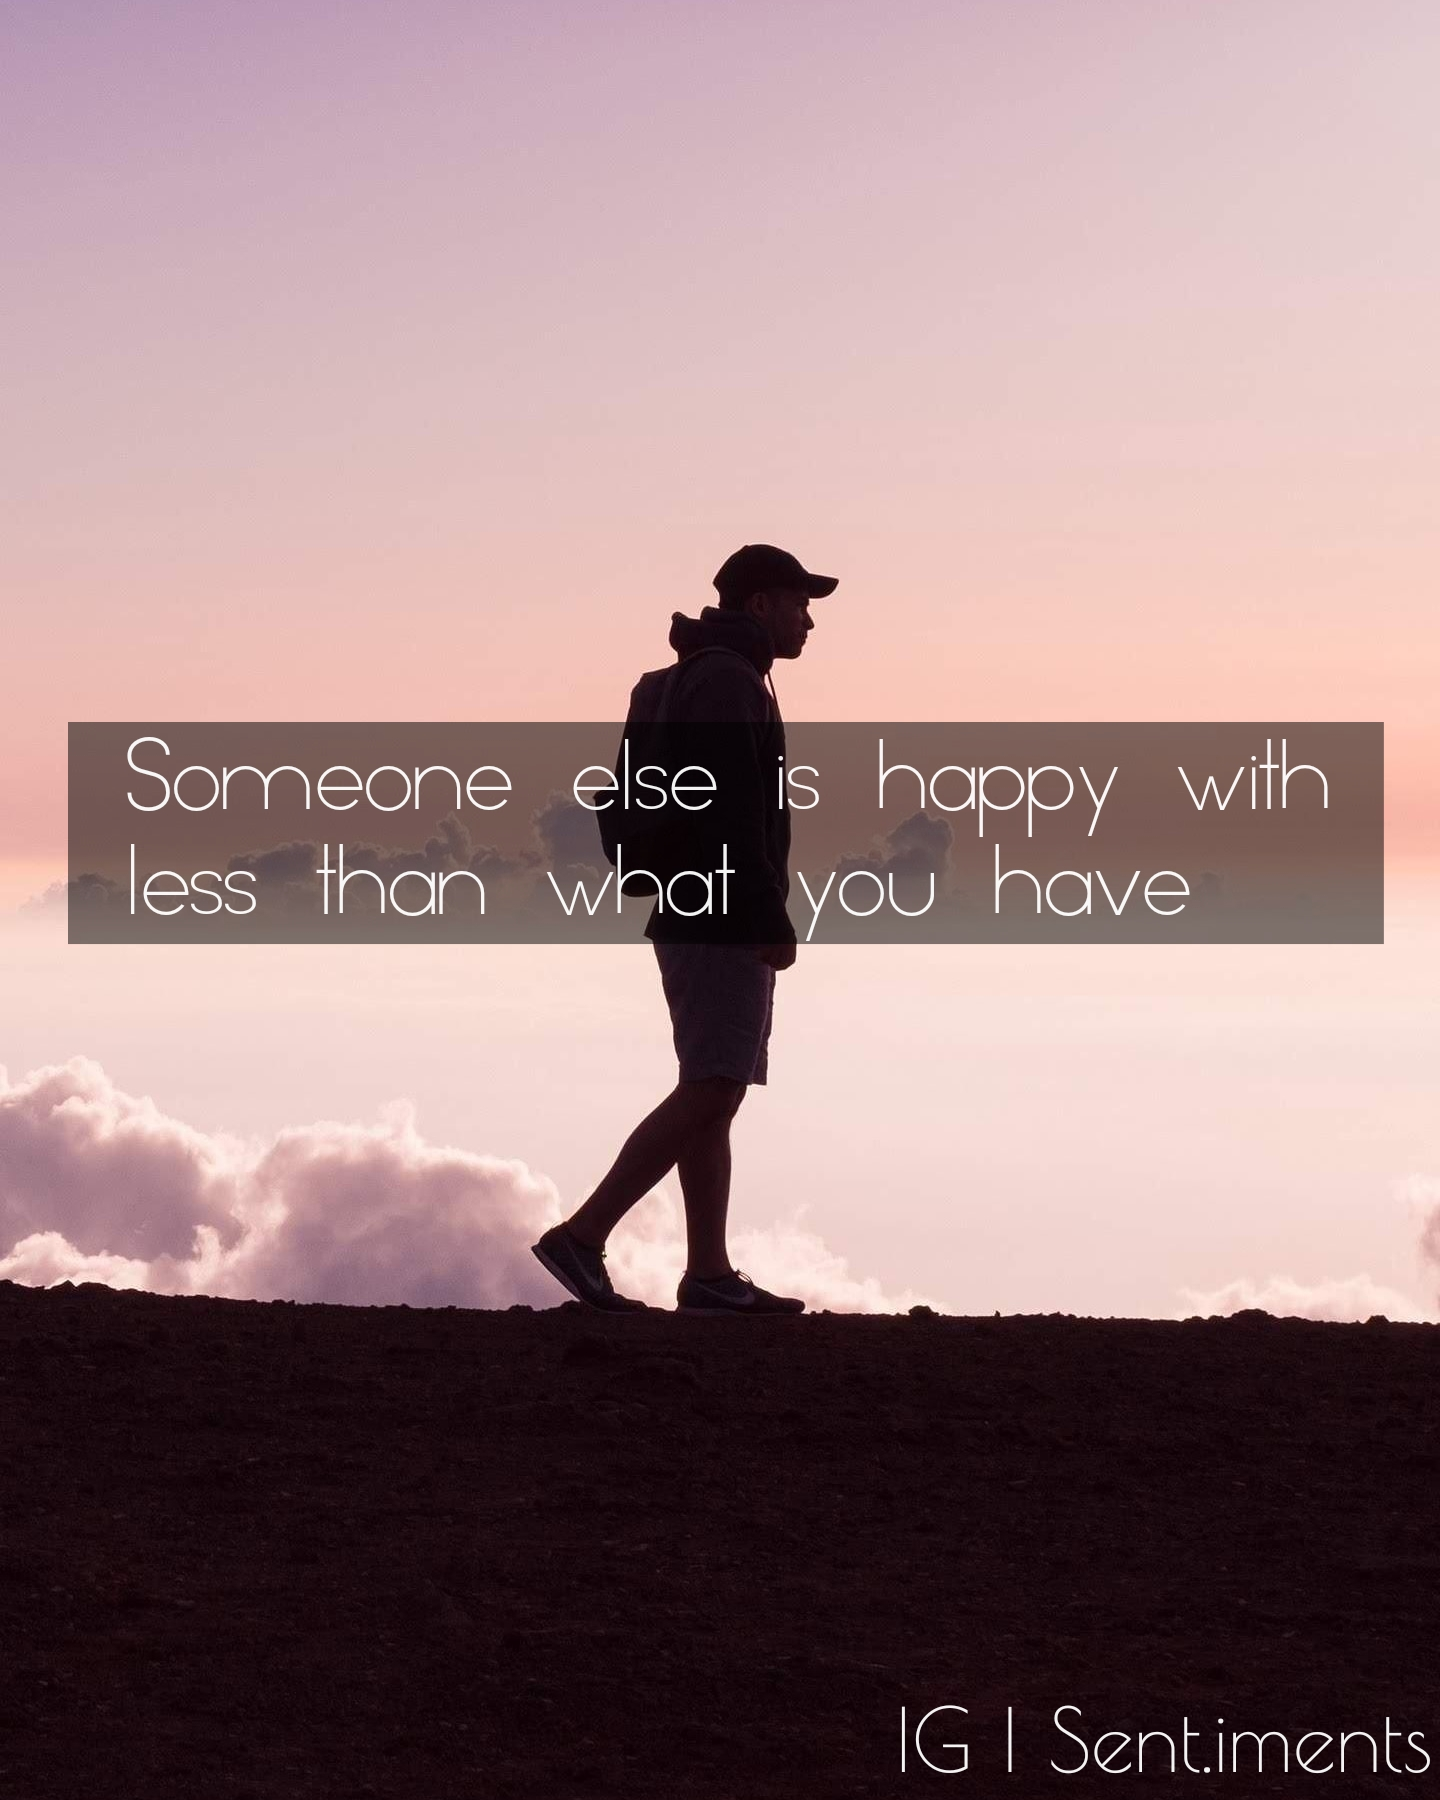 Someone else is happy with less than what you have by Unknown (1440X1800)